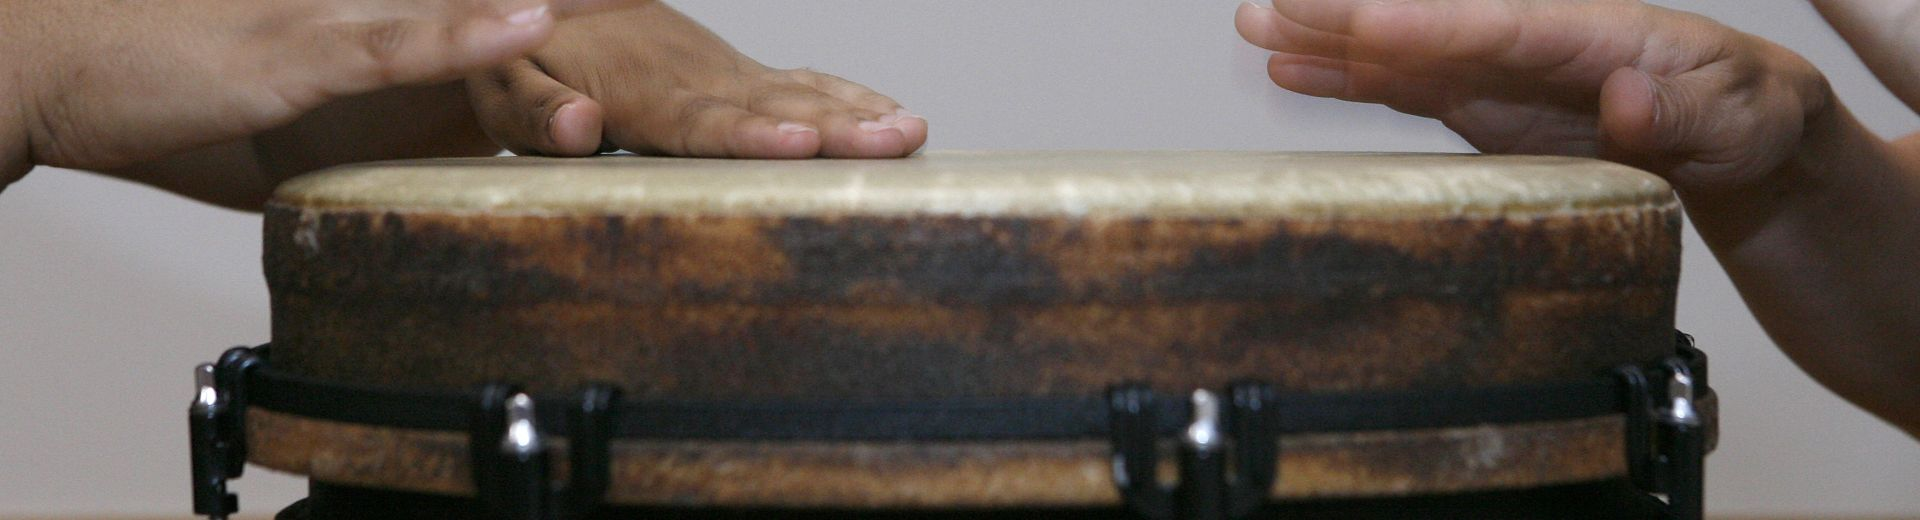 Two sets of hands hitting one drum head